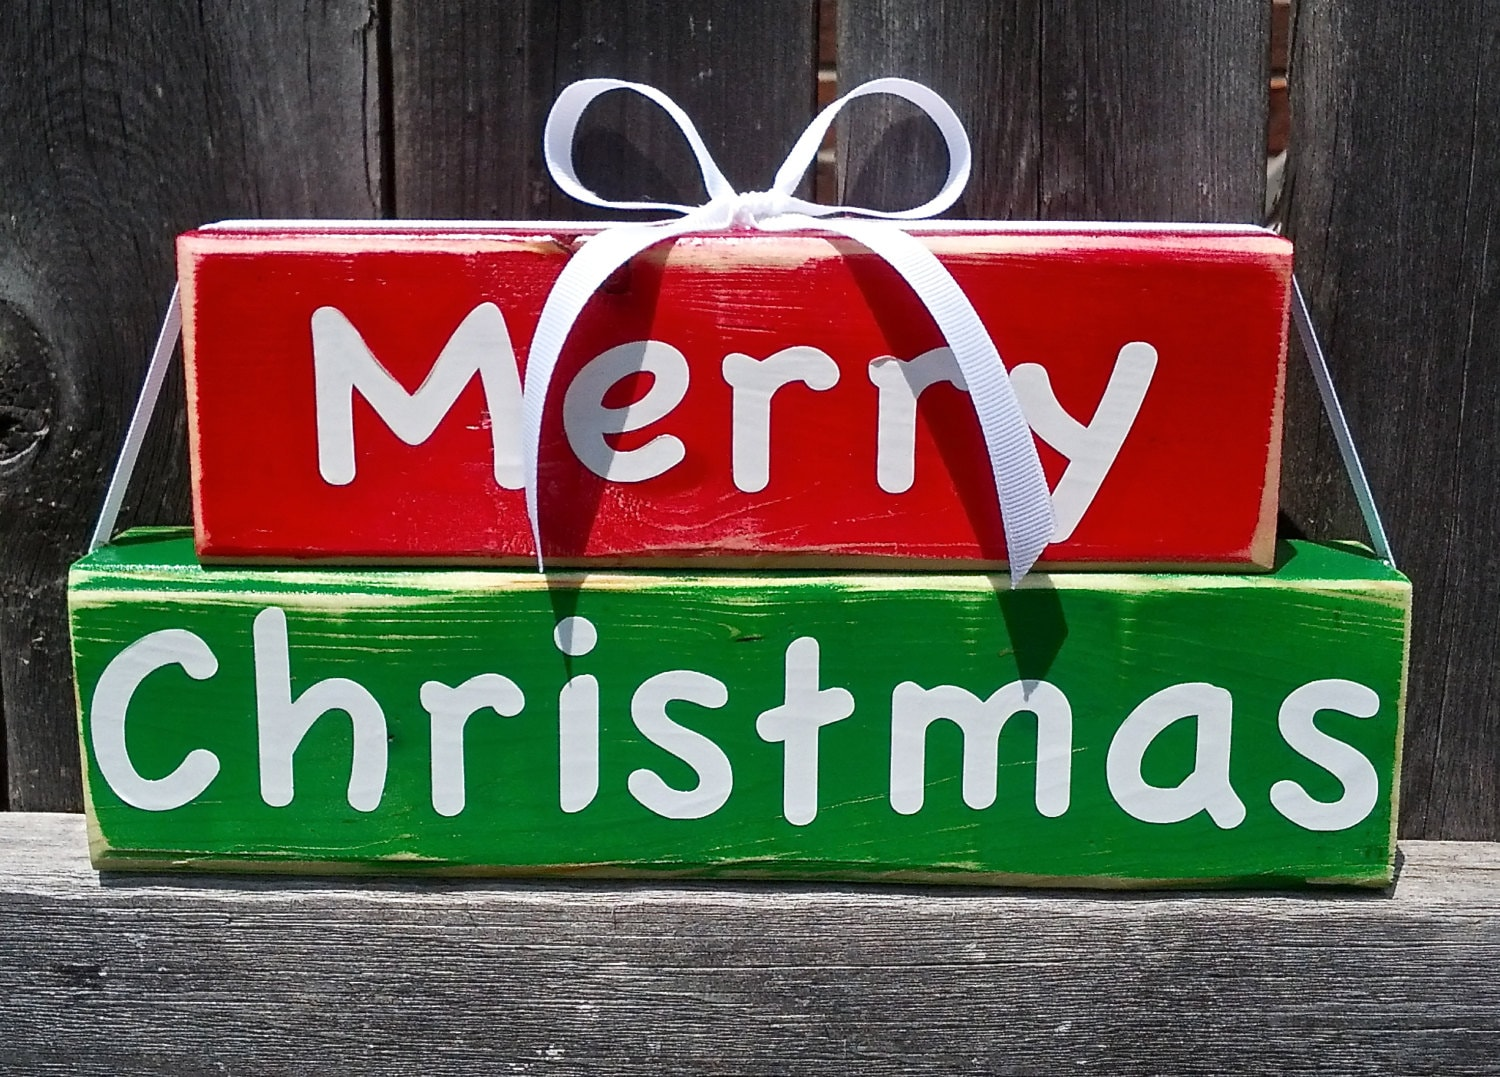 Merry Christmas Fun And Cute Wood Block Decor Sign Red